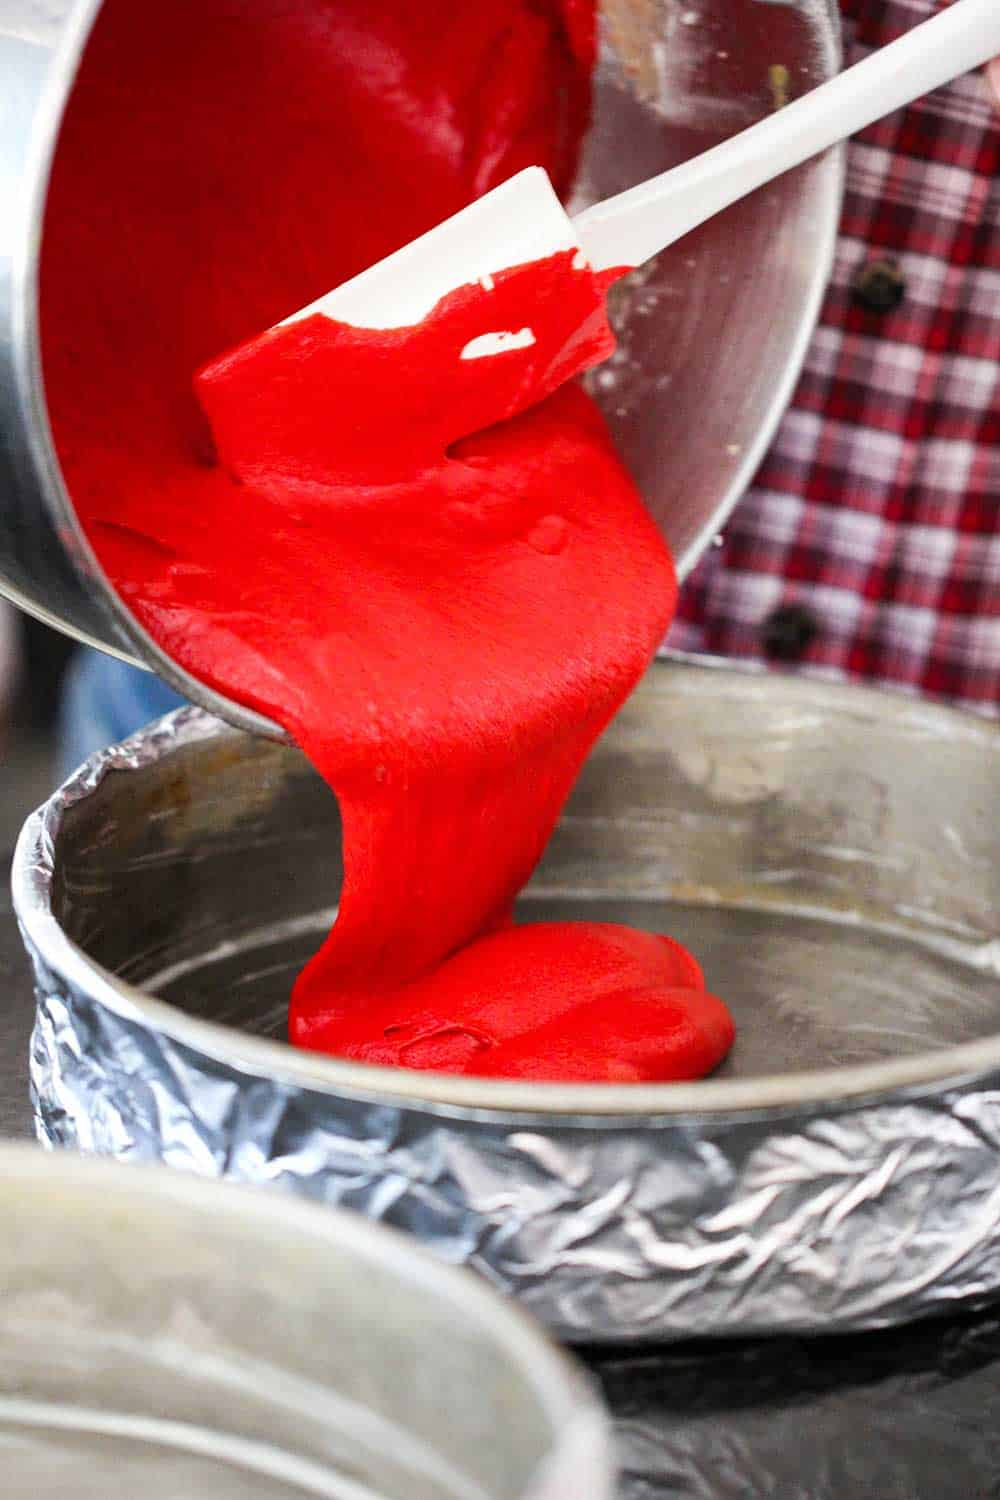 Red cake batter being poured into a cake pan lined with foil.